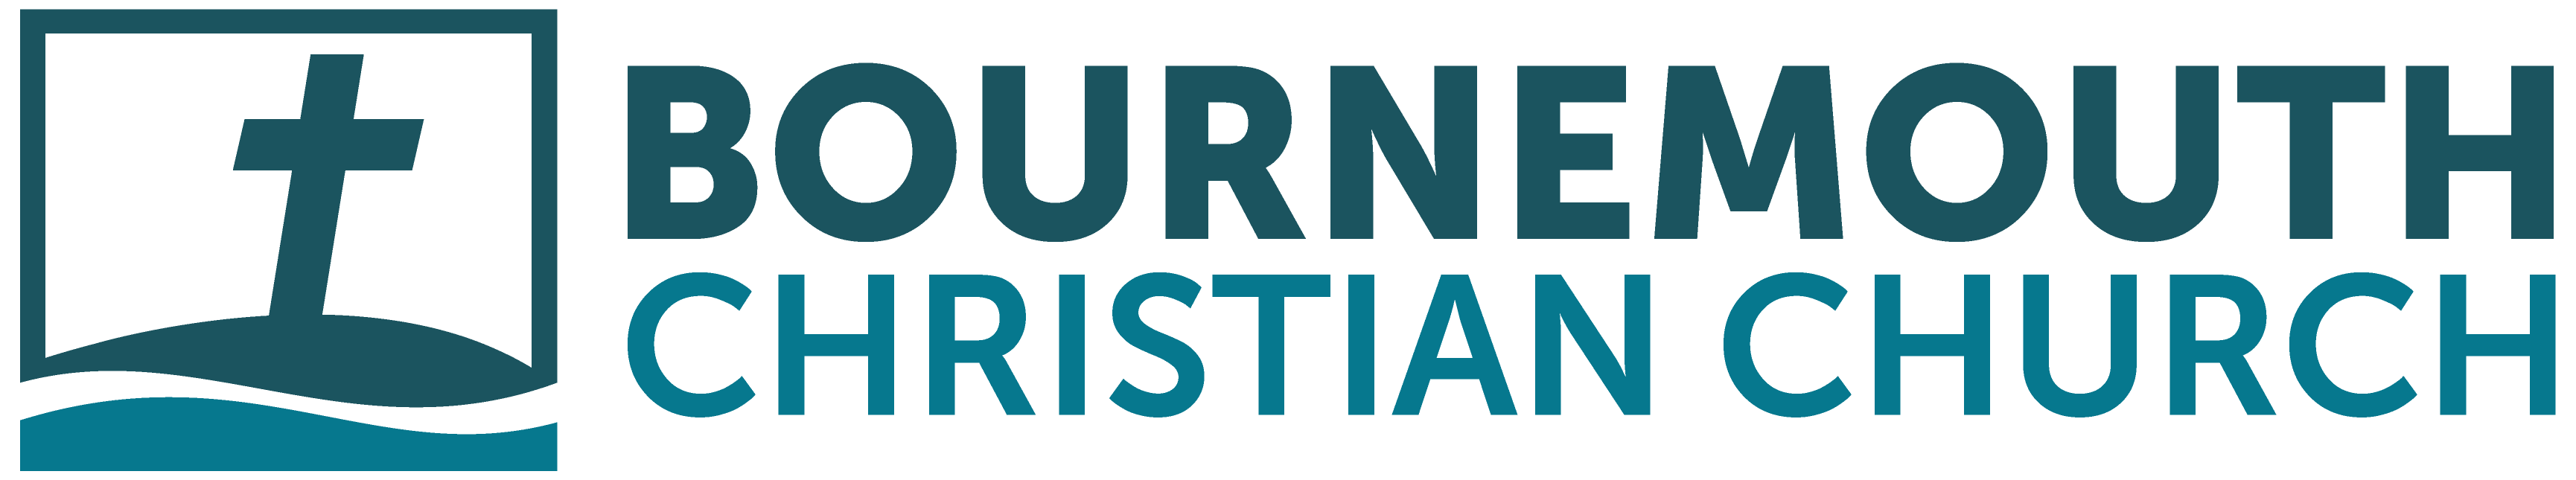 Bournemouth Christian Church is an evangelical church made up of people from various backgrounds, cultures and languages that the Lord has united through our identification with Jesus Christ.